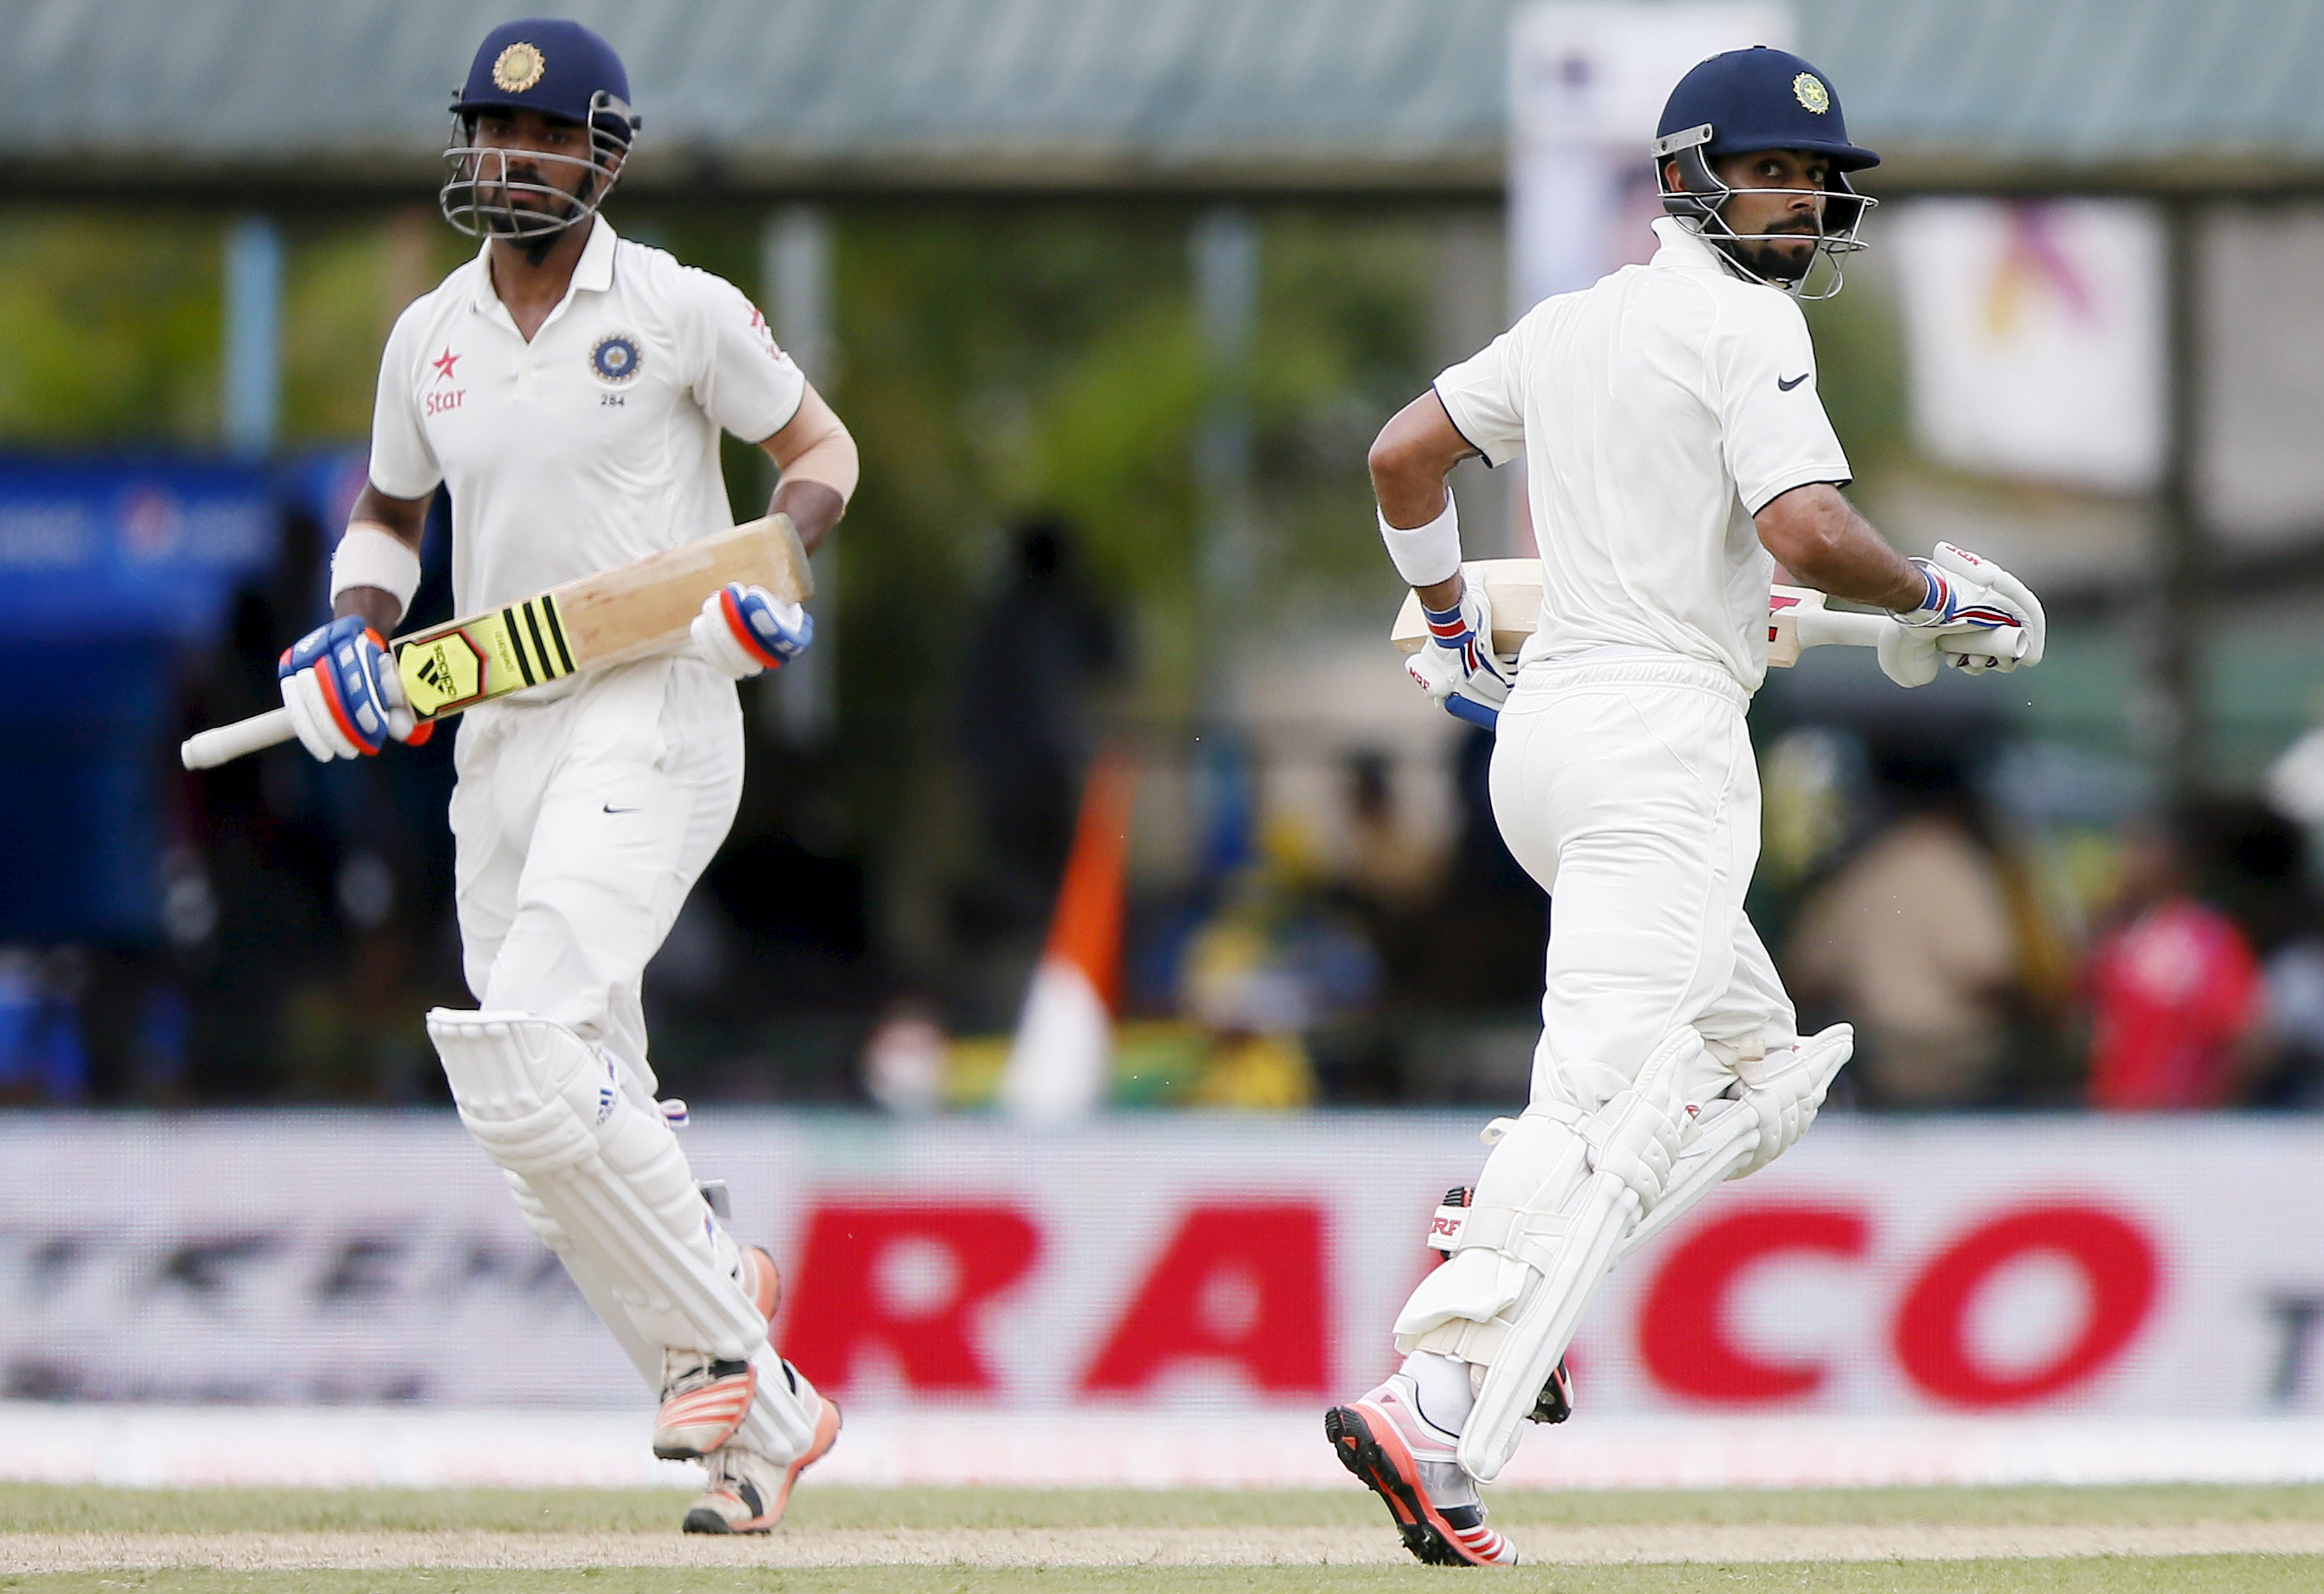 India's captain Virat Kohli (R) and Lokesh Rahul